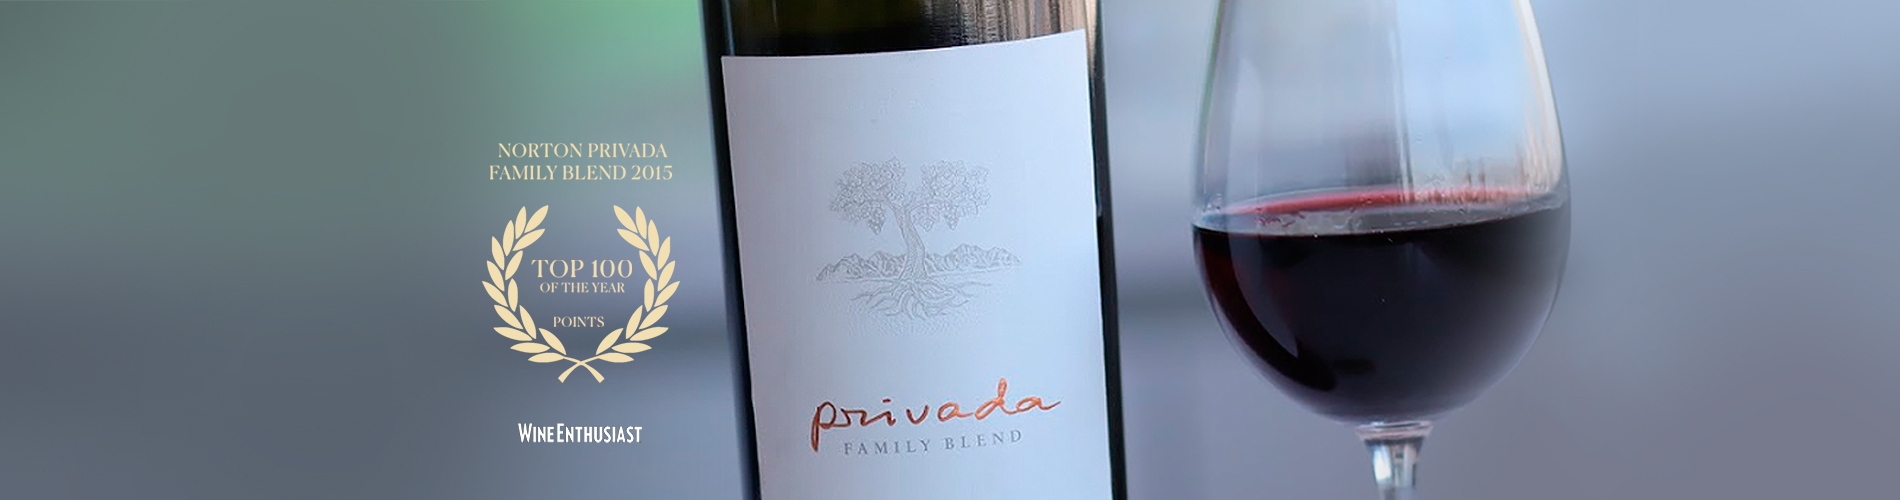 Norton Privada Family Blend Named One of the Best 100 Wines in the World by Wine Enthusiast